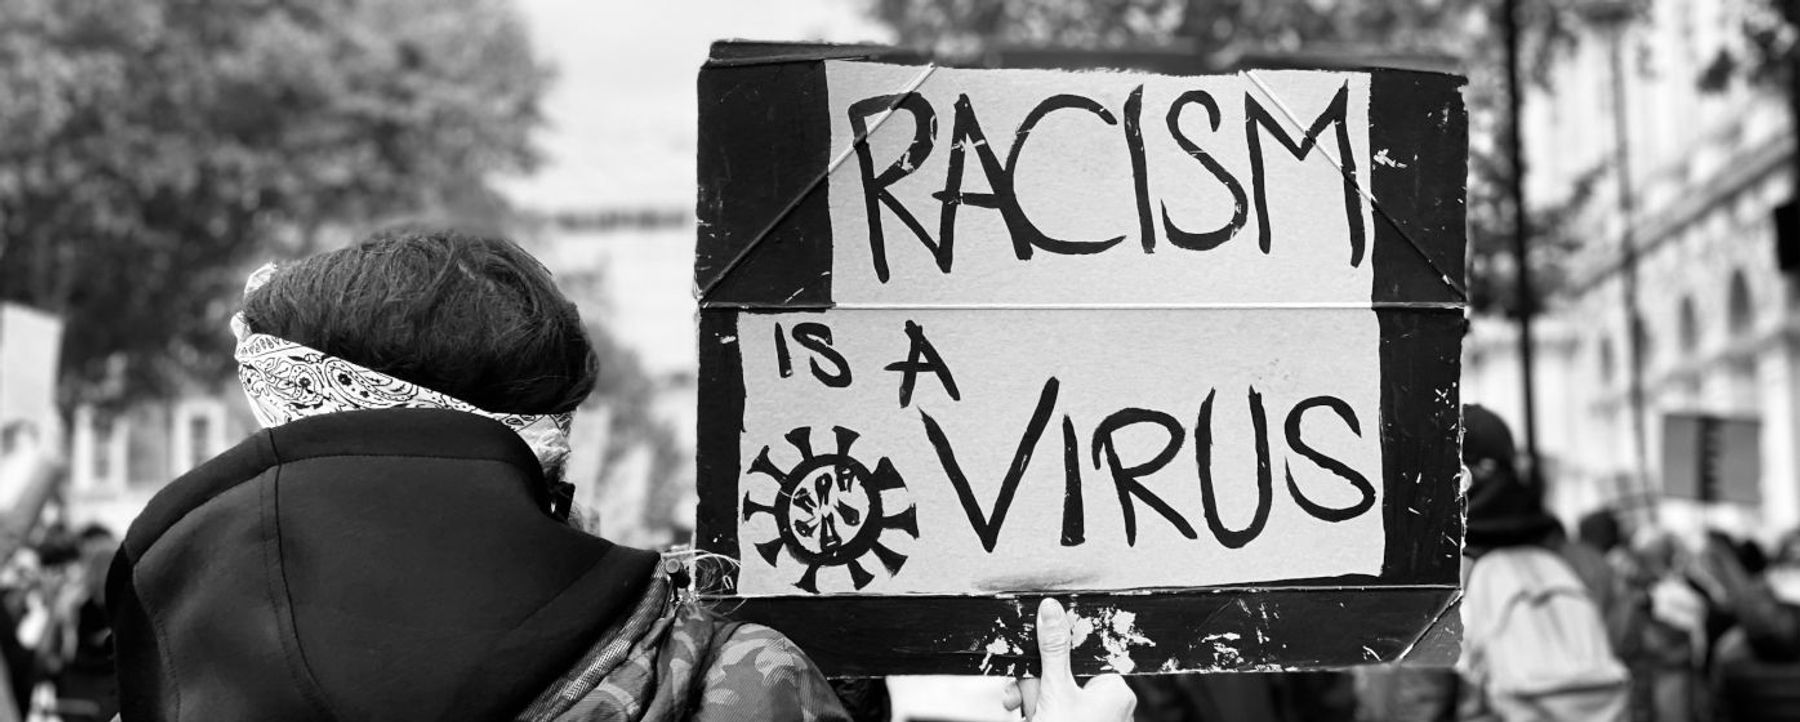 Opinion: The Politics of Science and Racism